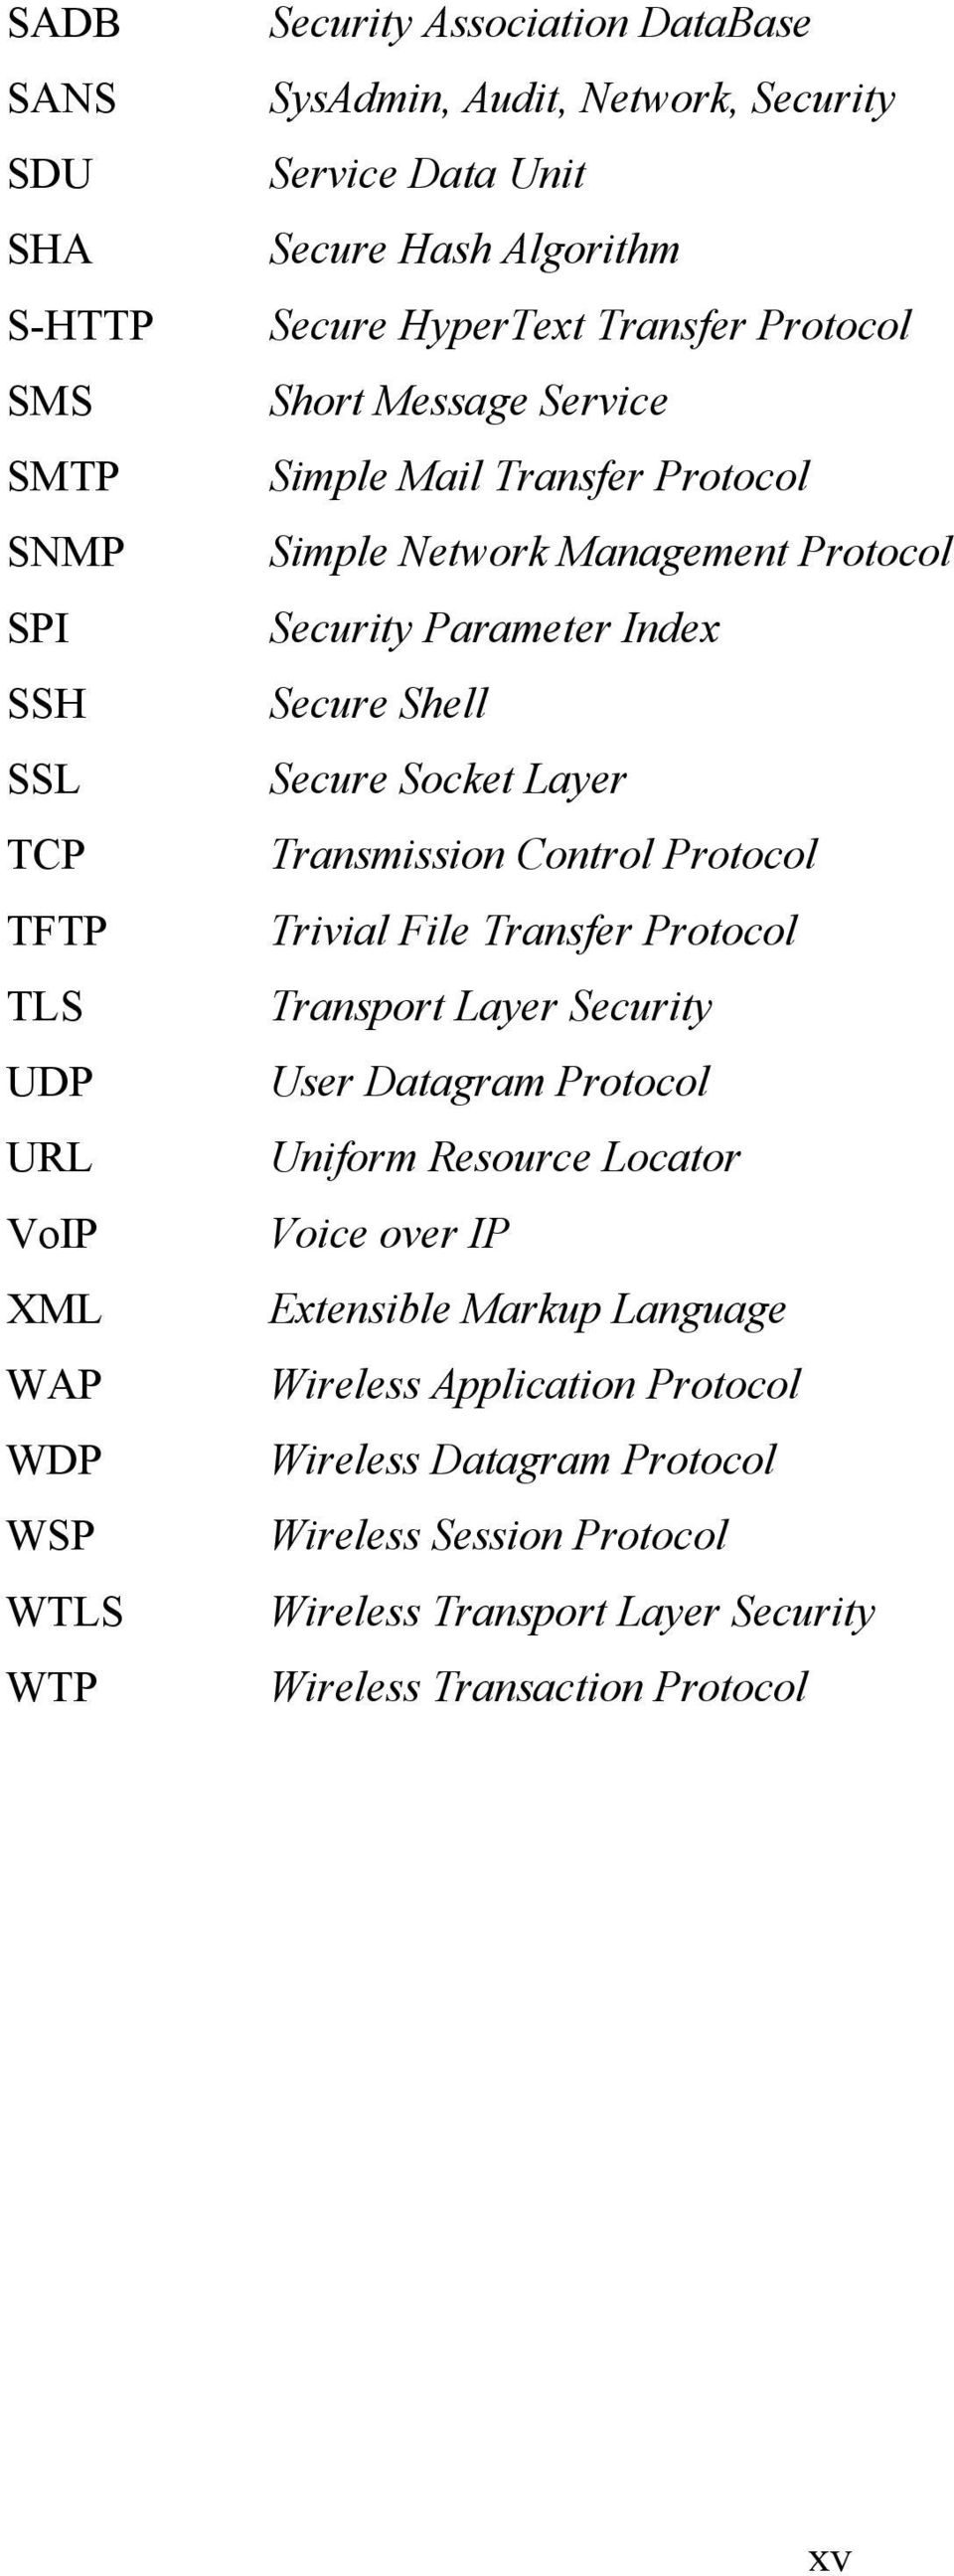 Index Secure Shell Secure Socket Layer Transmission Control Protocol Trivial File Transfer Protocol Transport Layer Security User Datagram Protocol Uniform Resource Locator